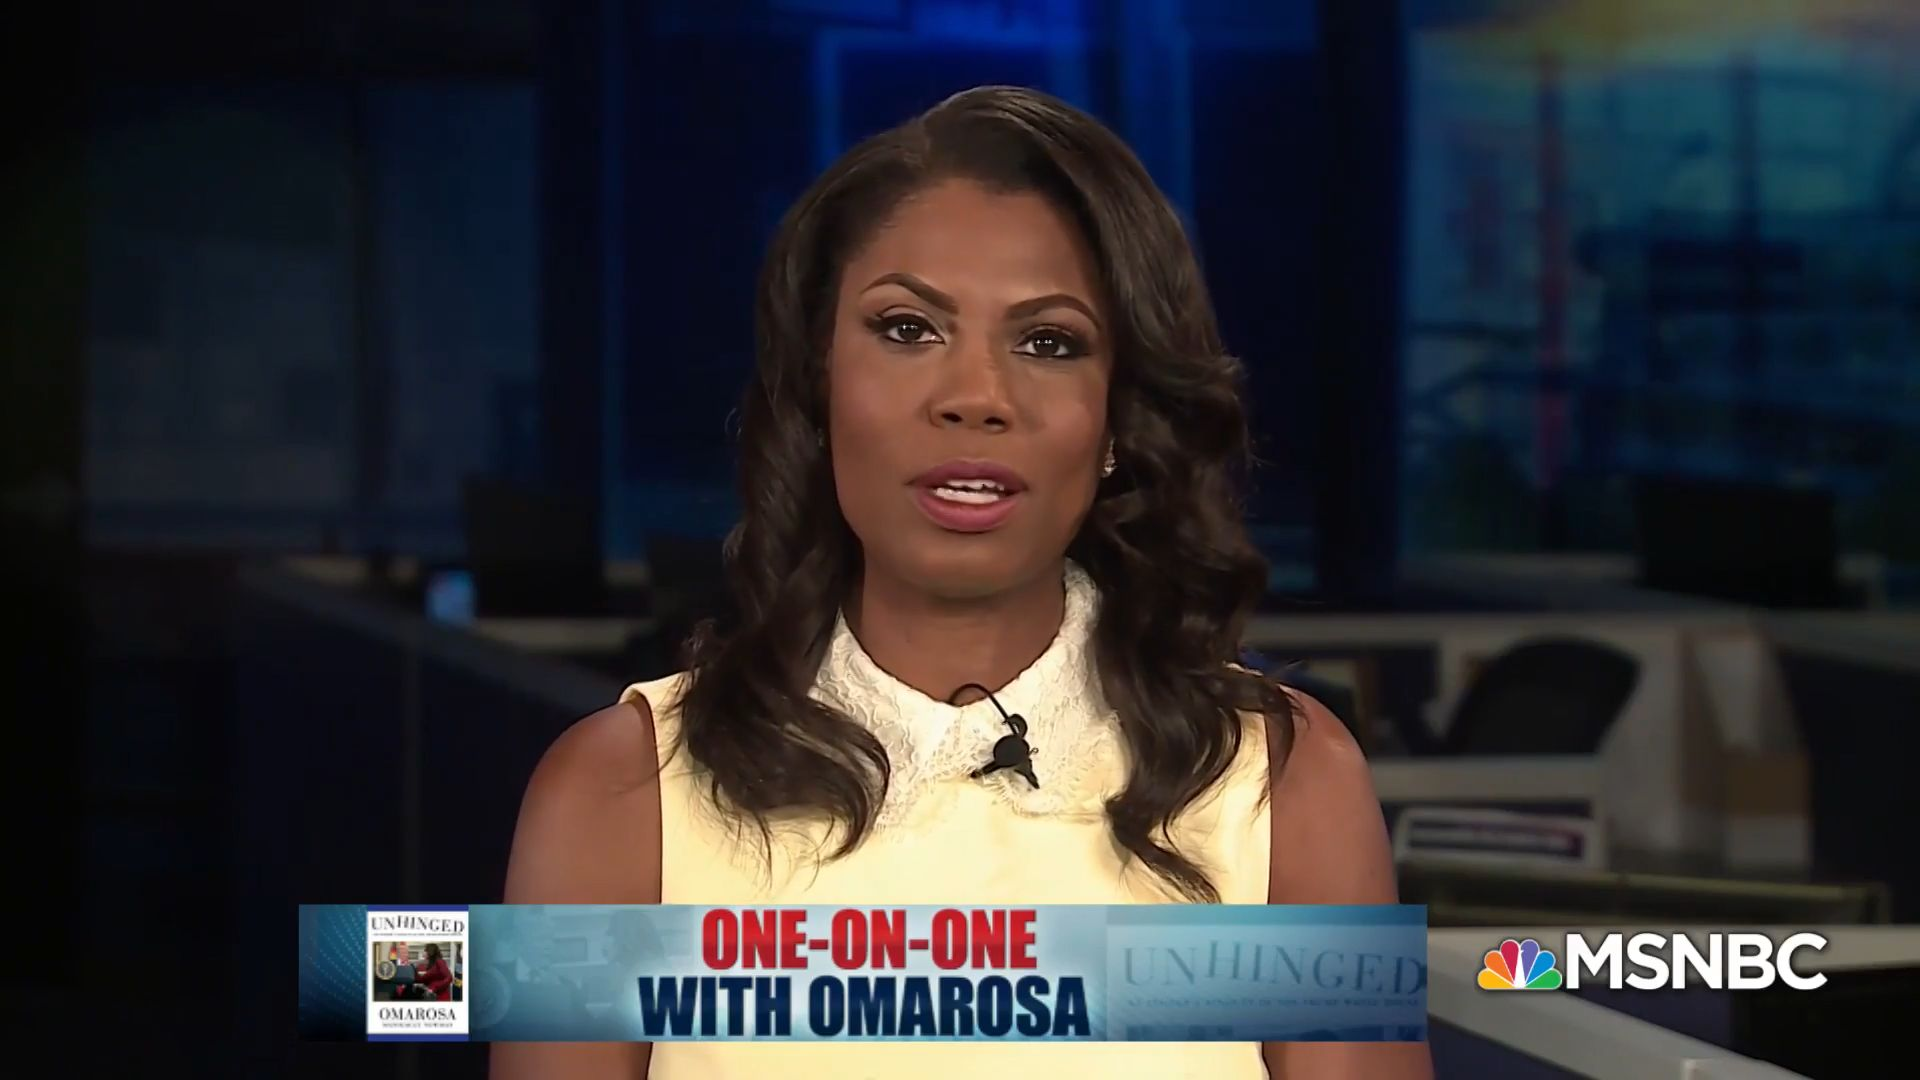 Former White House adviser Omarosa Manigault-Newman on Sunday called President Donald Trump a racist who uses people as props